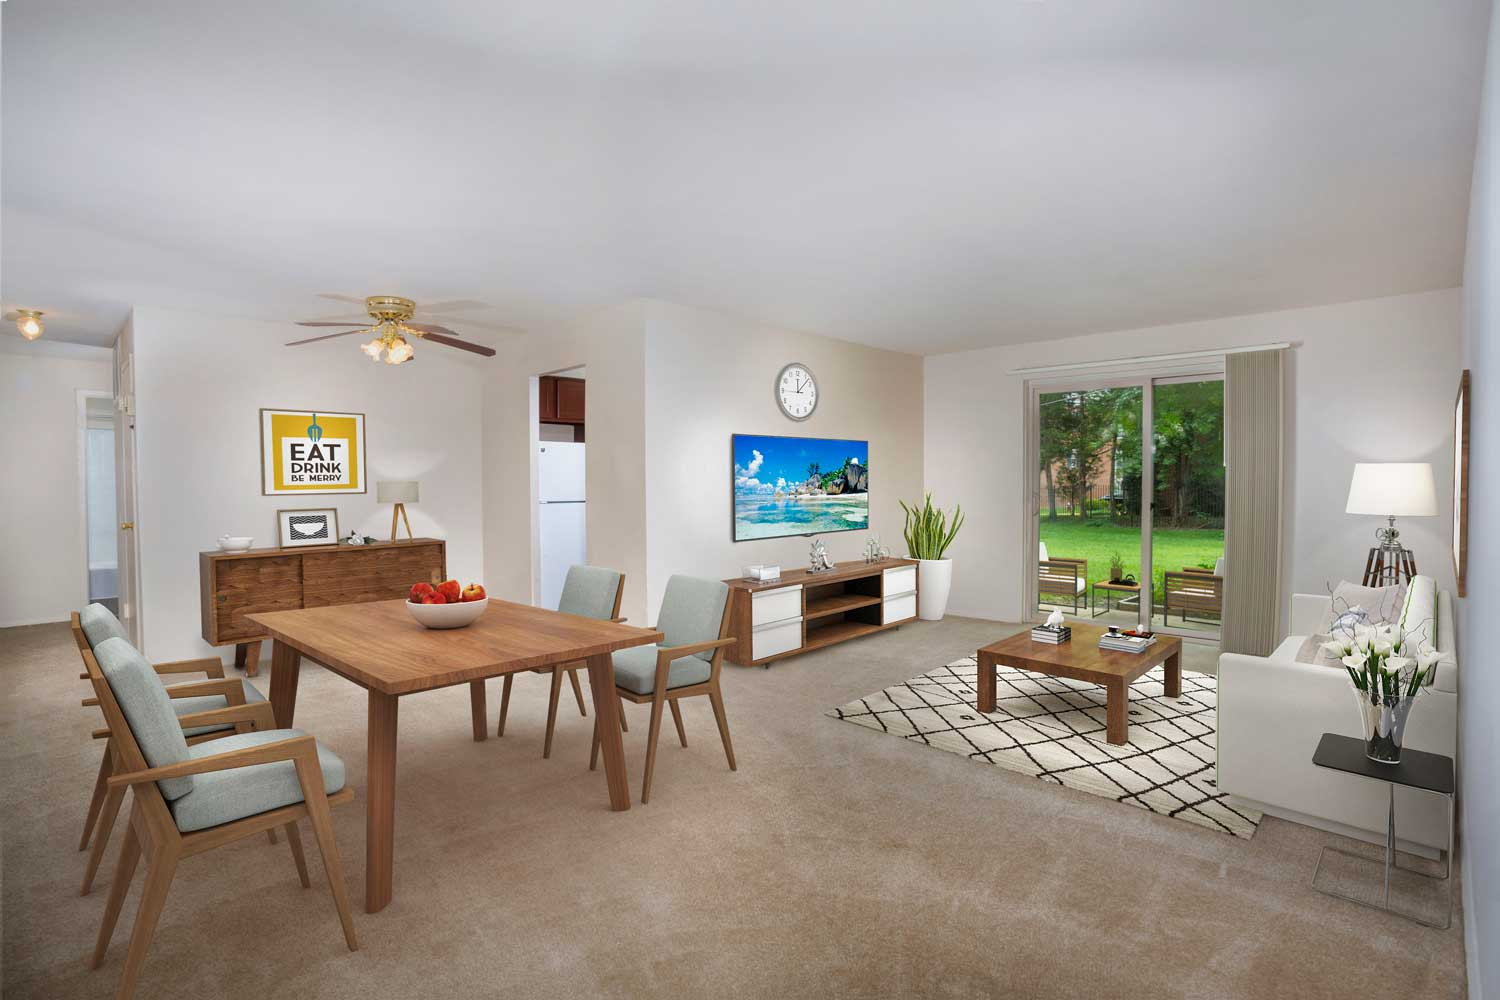 Spacious dining and living area at Barcroft View Apartments in Falls Church, VA